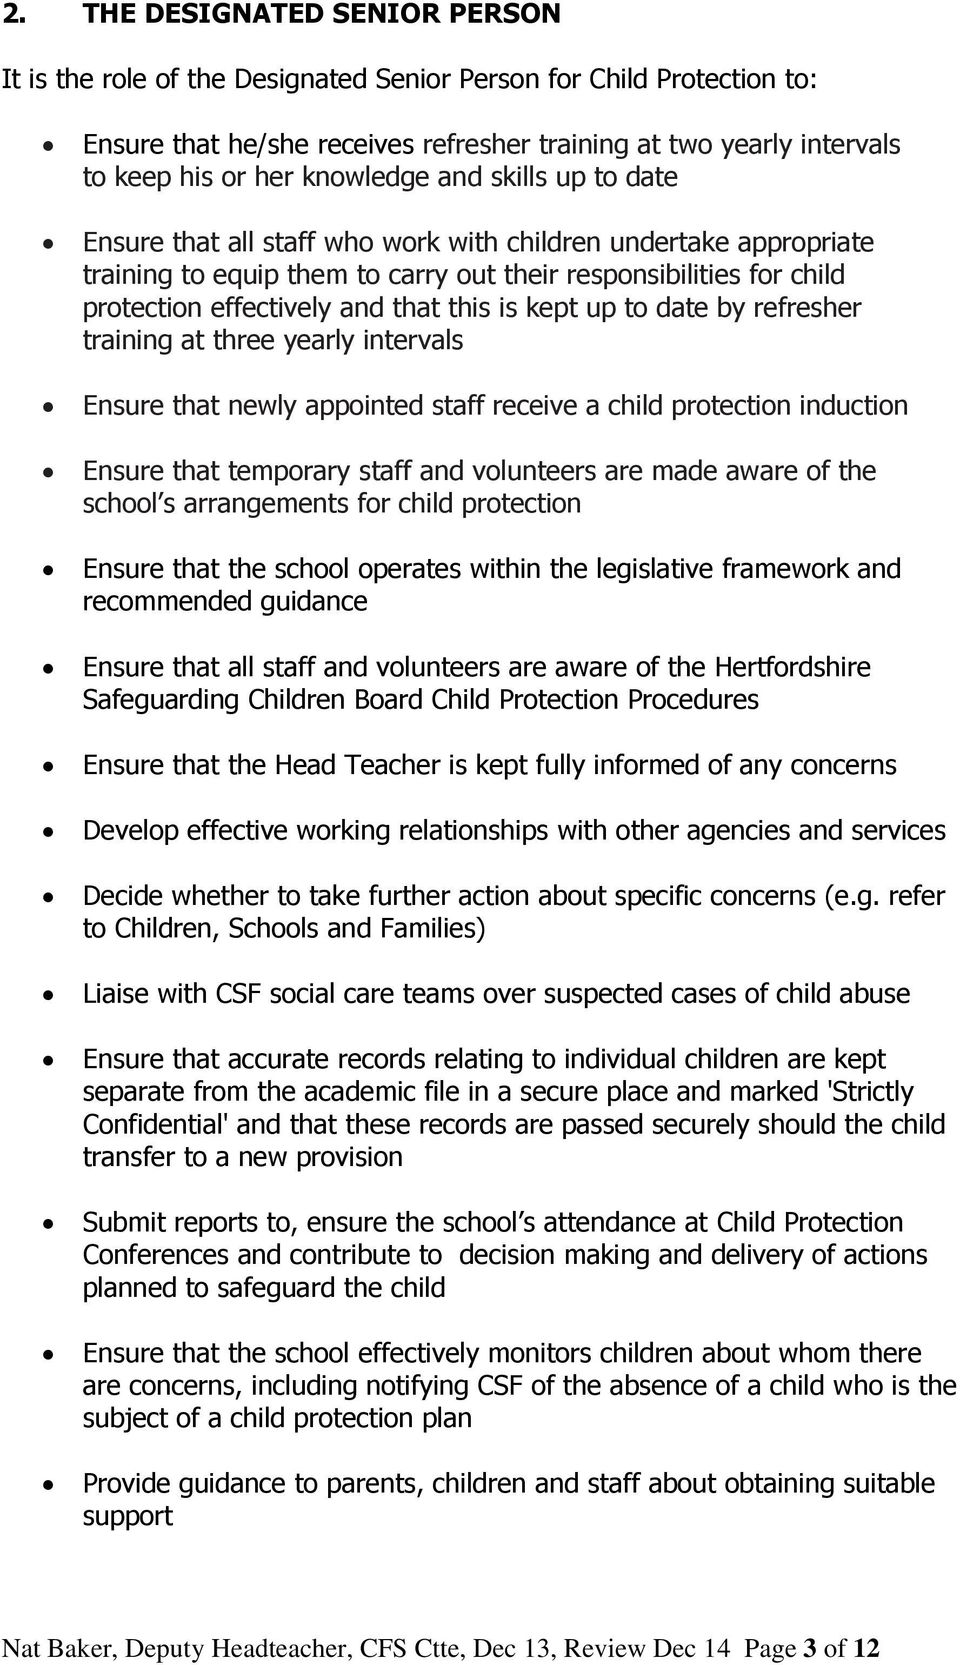 CHILD PROTECTION POLICY - PDF